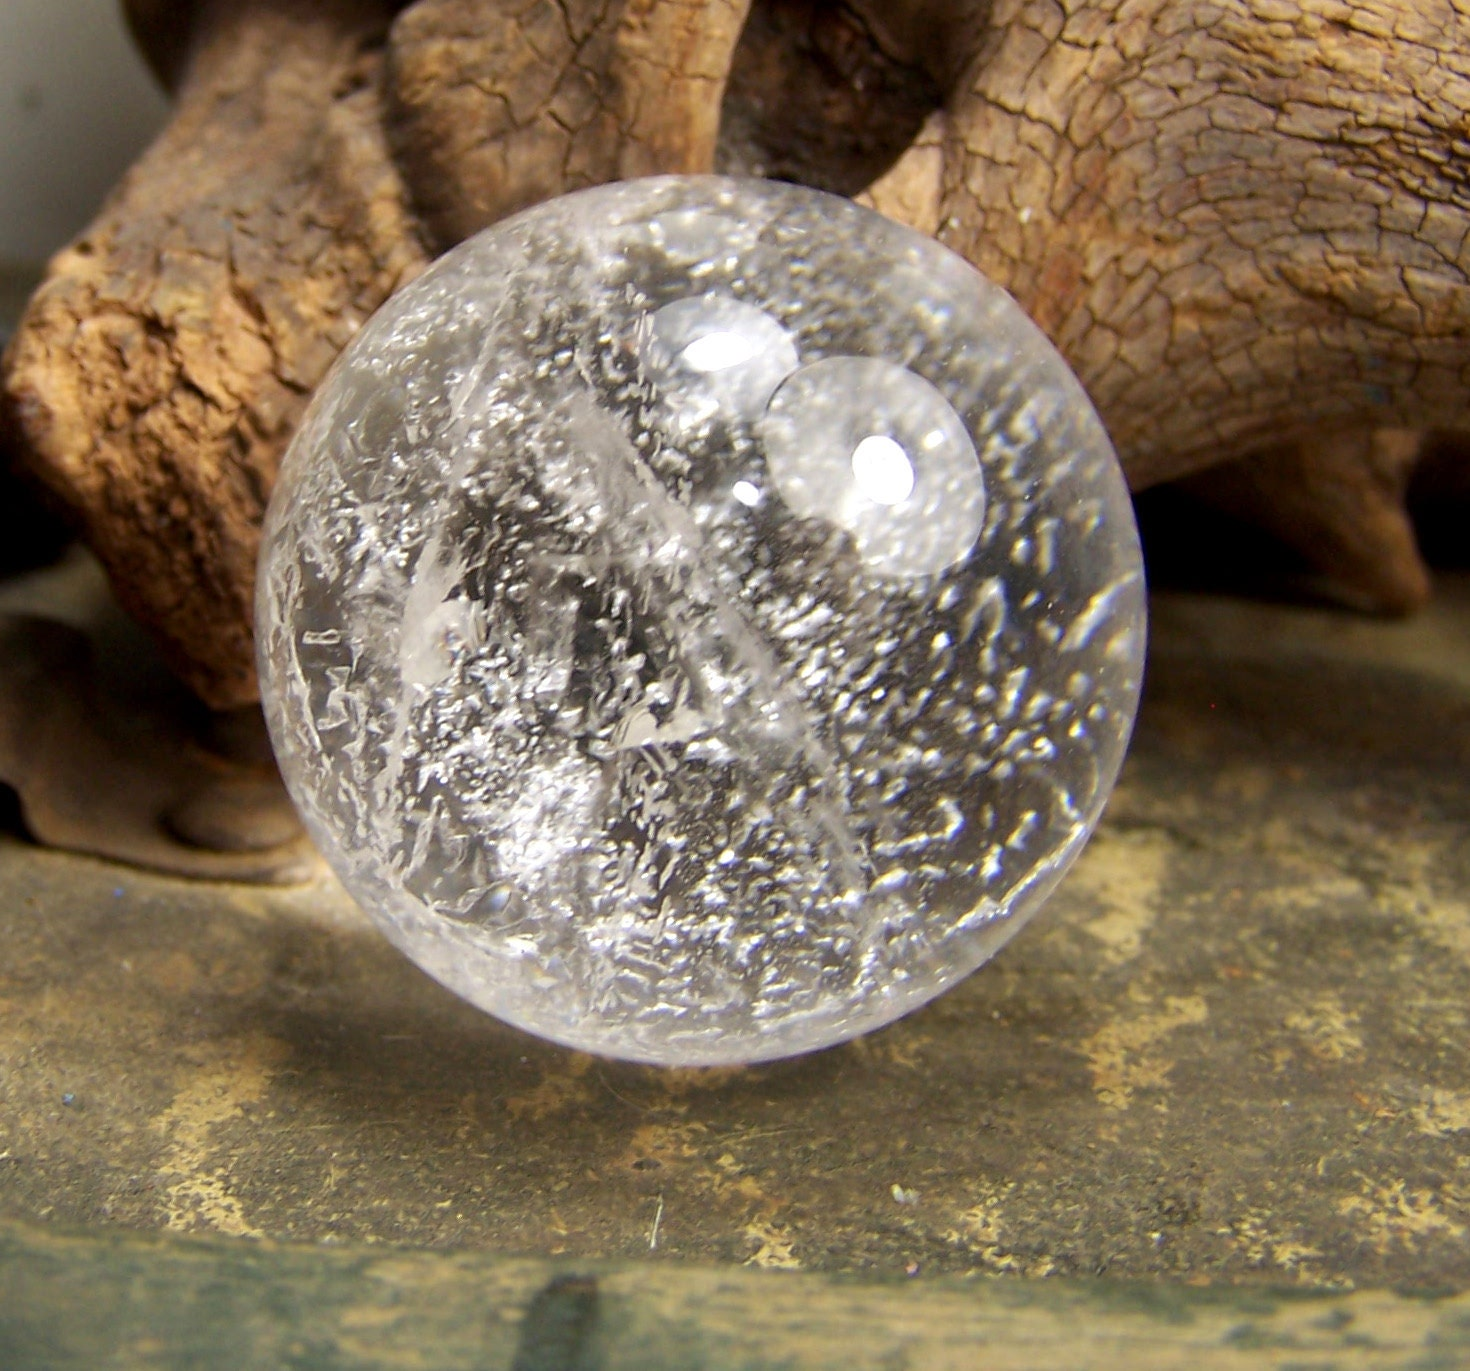 Clear Quartz crystal sphere 1 1/2 inch round naturalQuartz Crystal Sphere